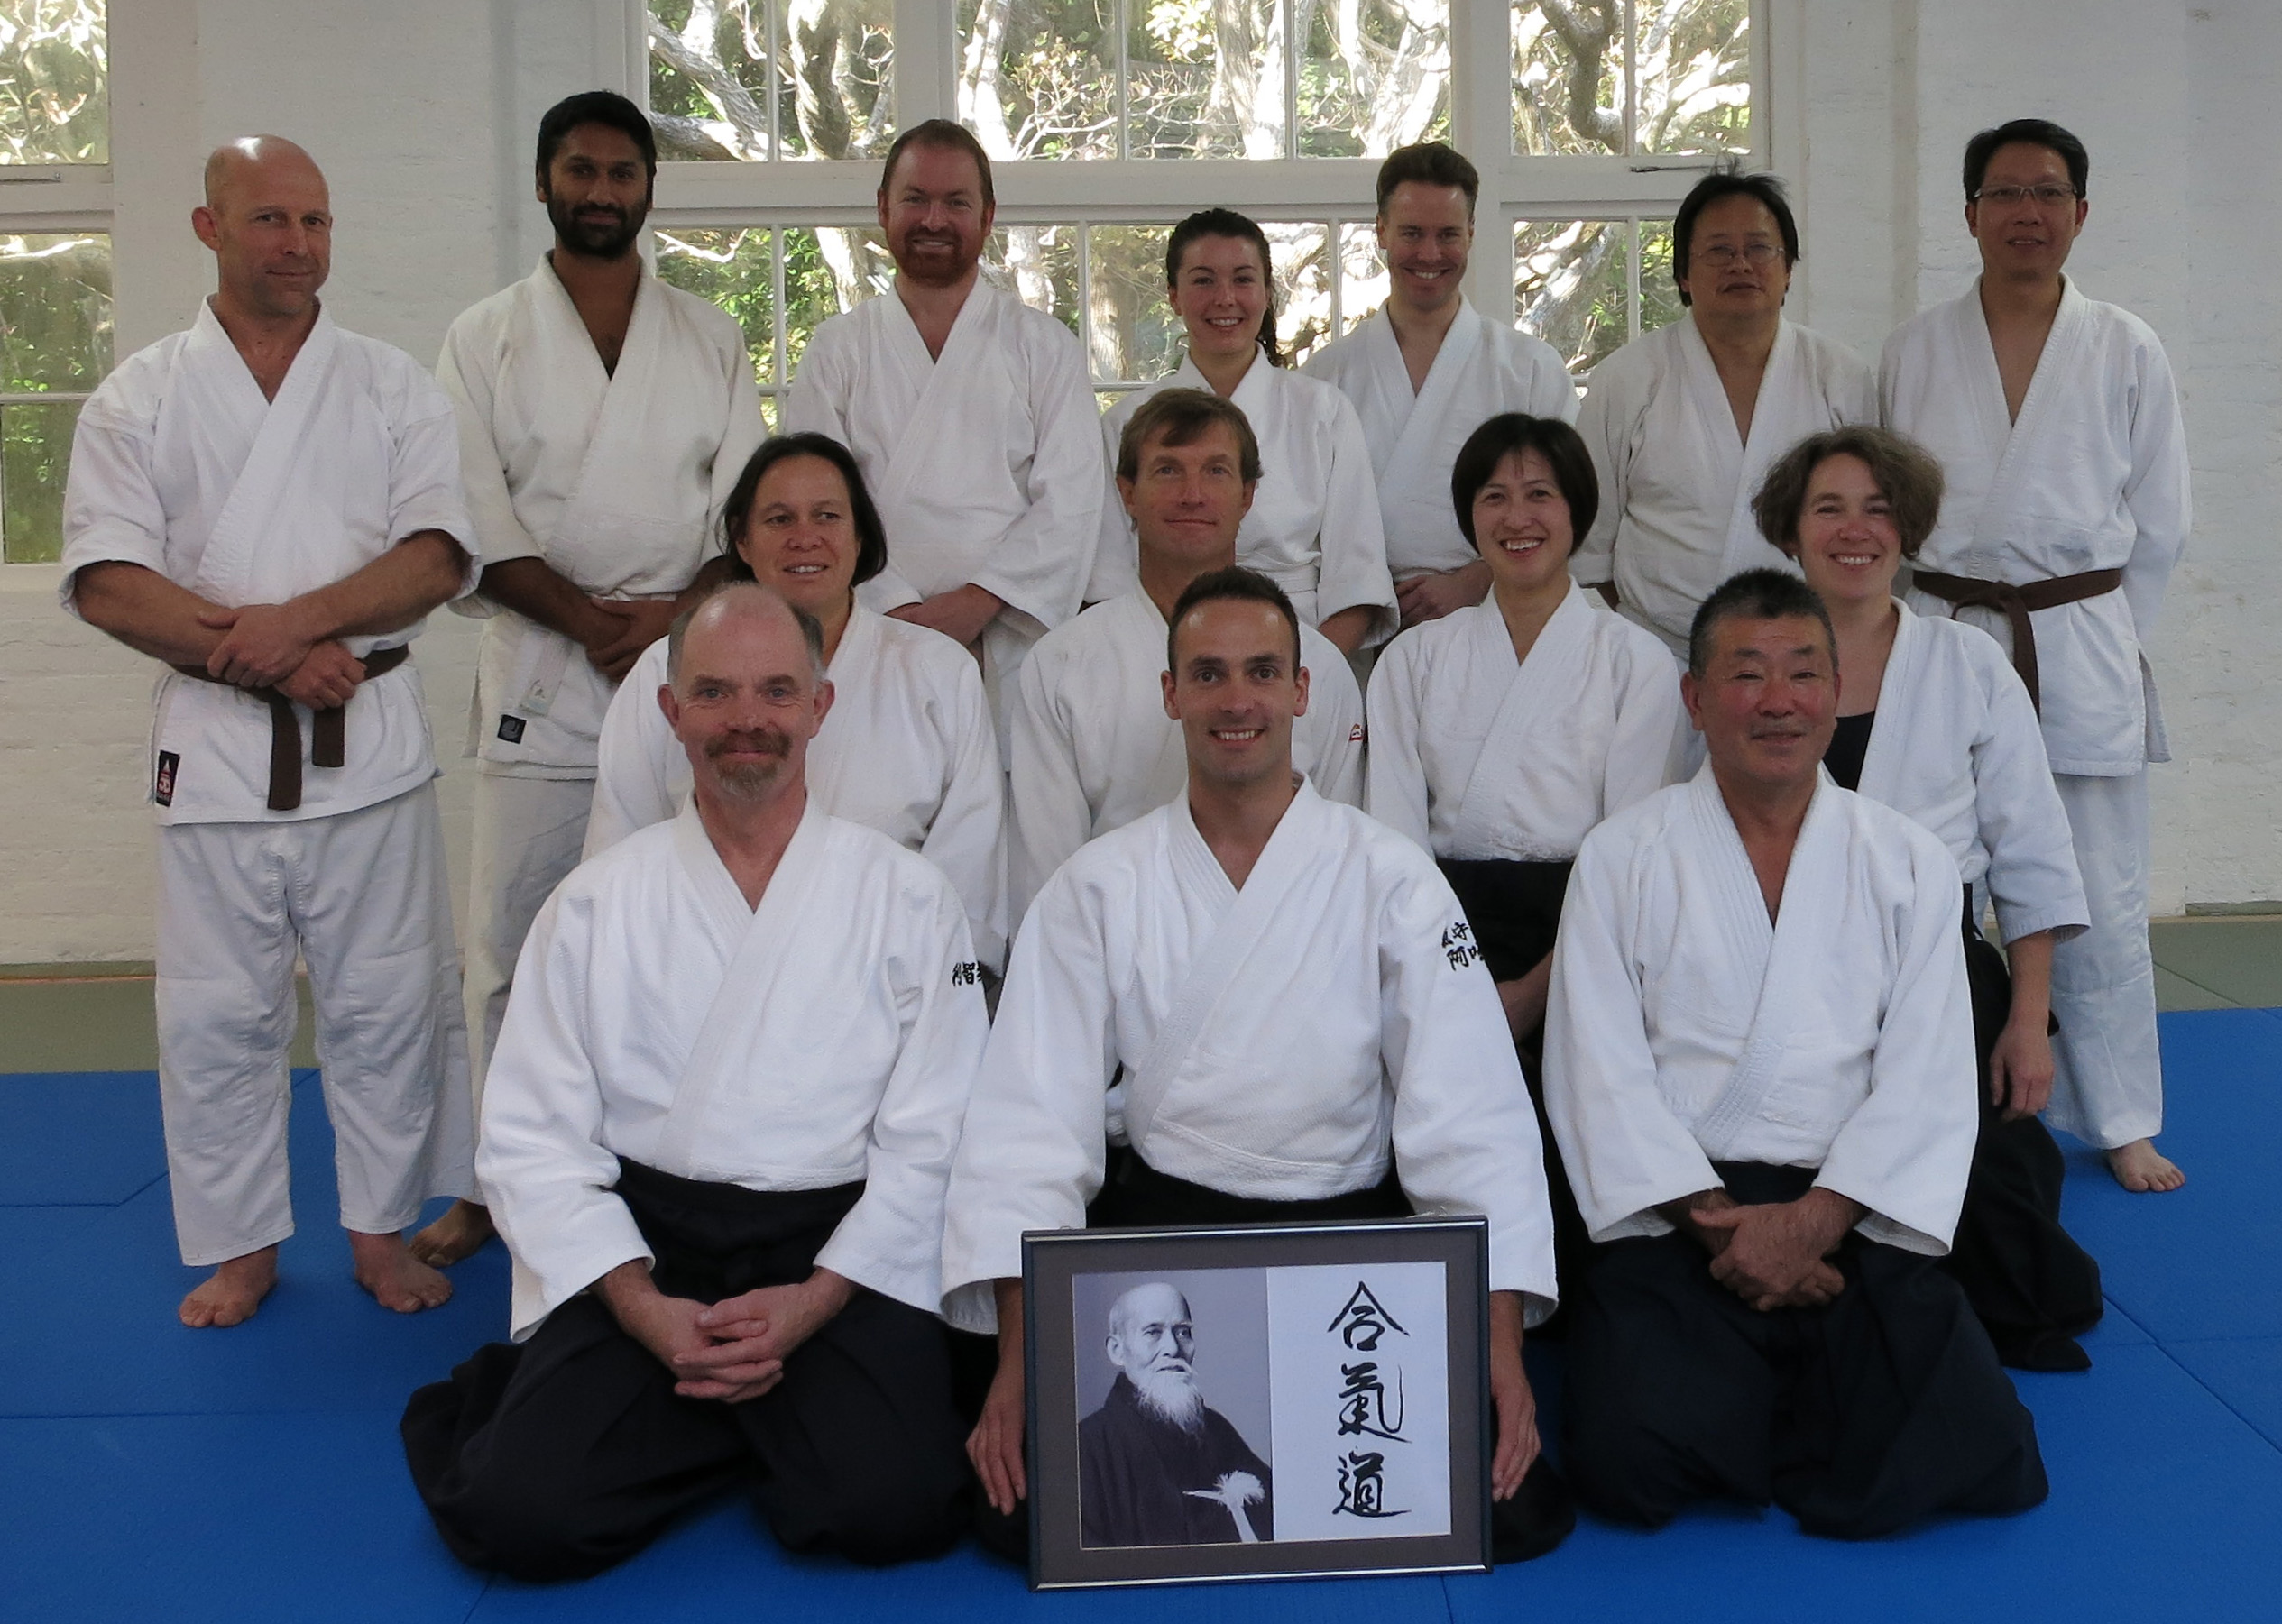 [image] Aaron's seminar May 2013.